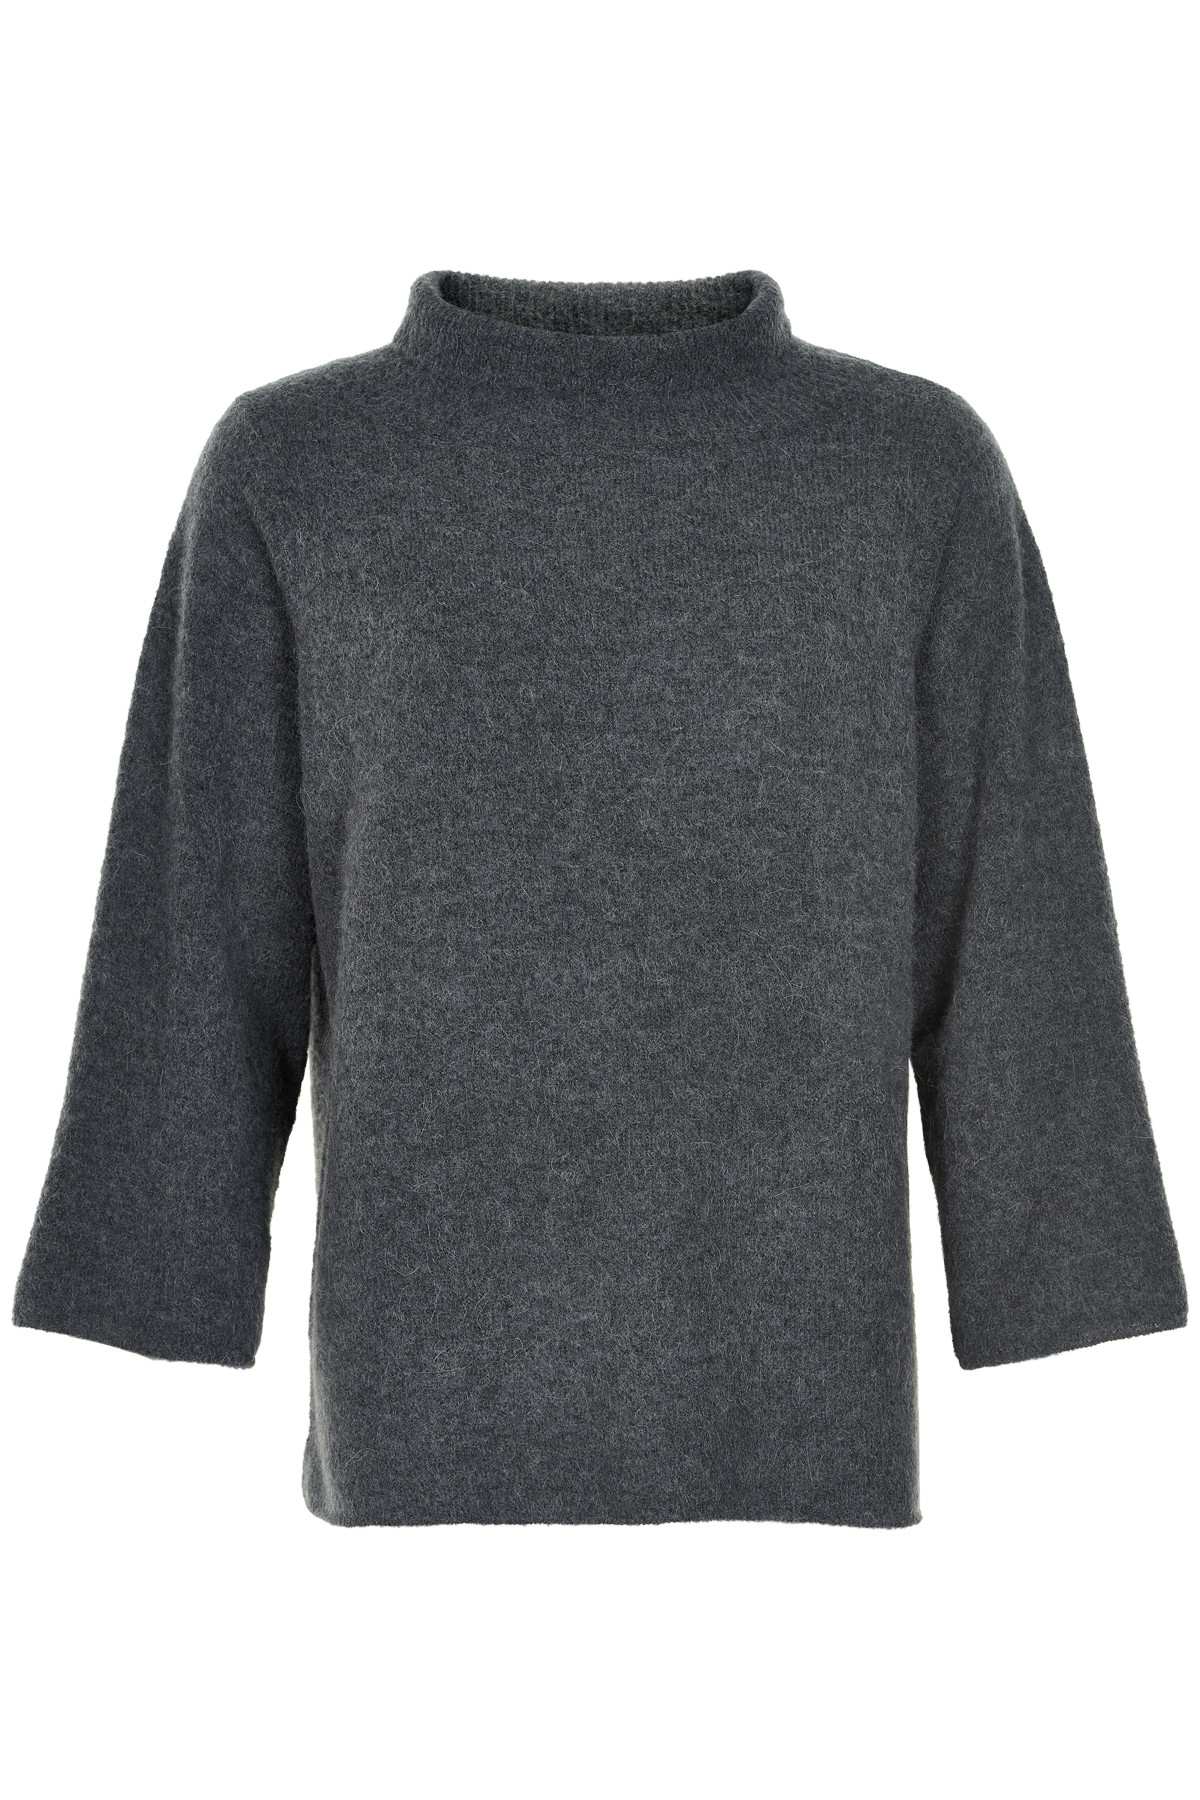 Image of   AND LESS ALELENORE PULLOVER 5519204 (Folkstone, S)